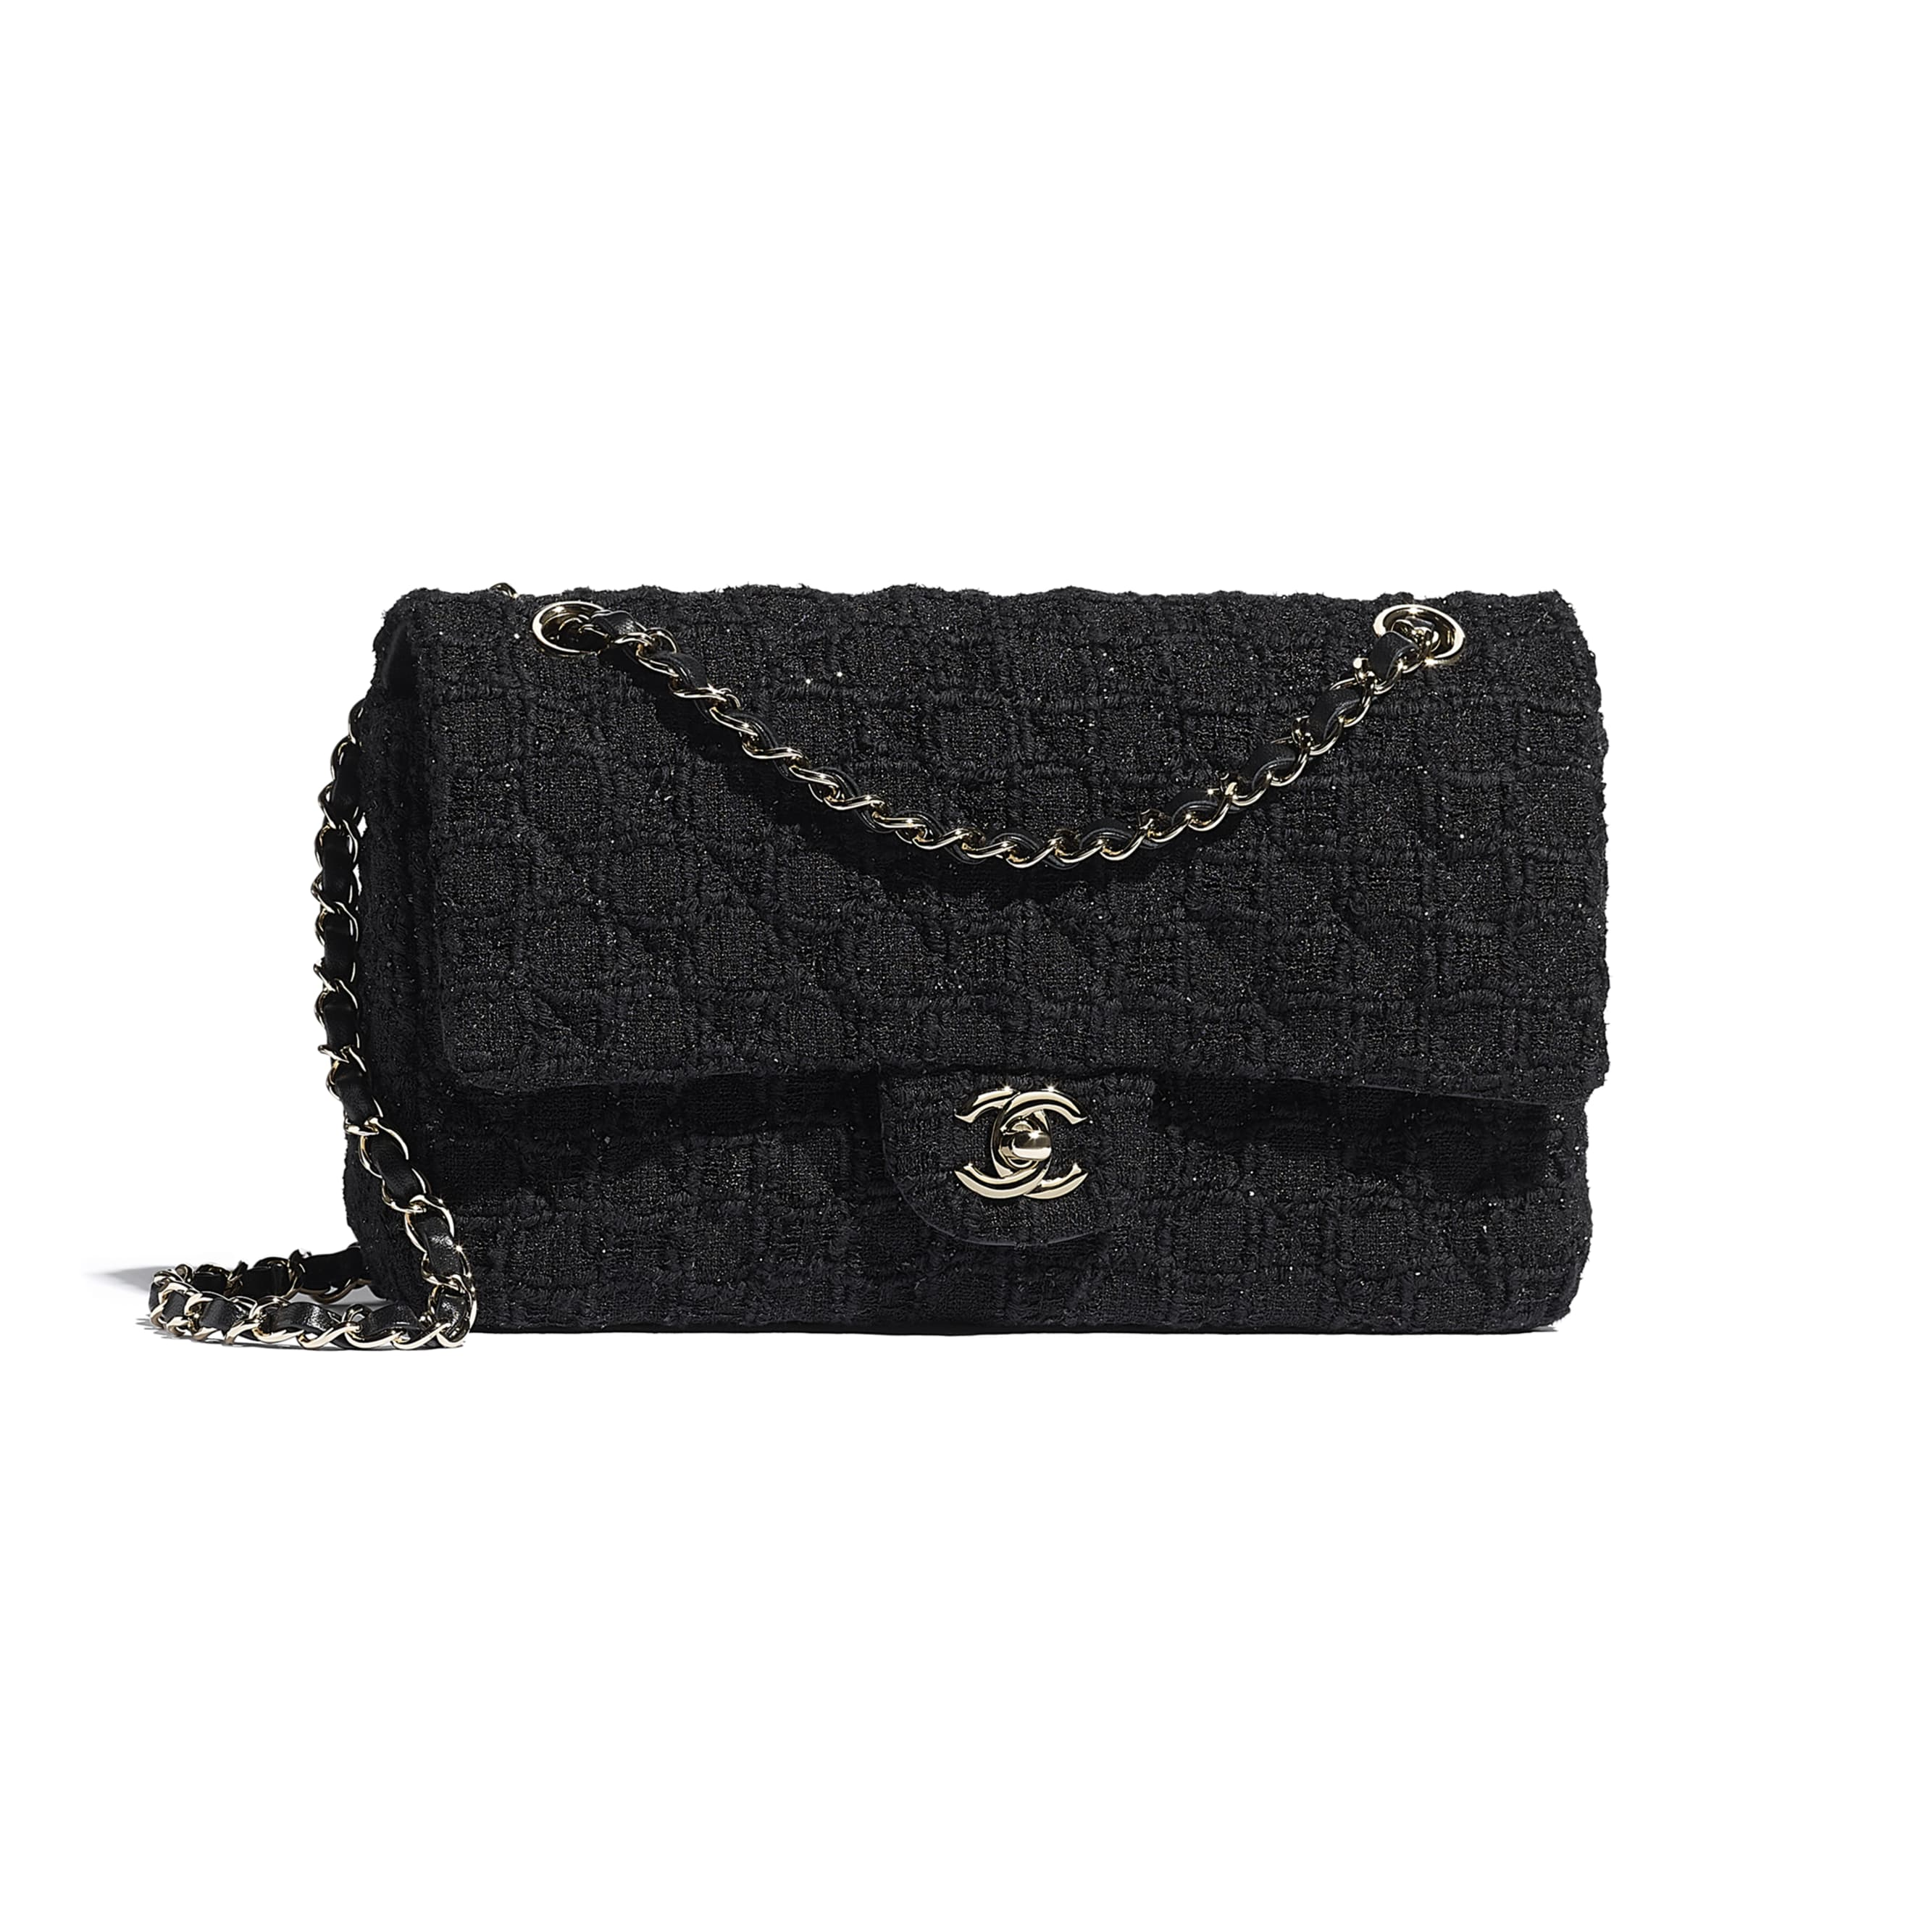 Classic Handbag - Black - Tweed & Gold Metal - CHANEL - Default view - see standard sized version